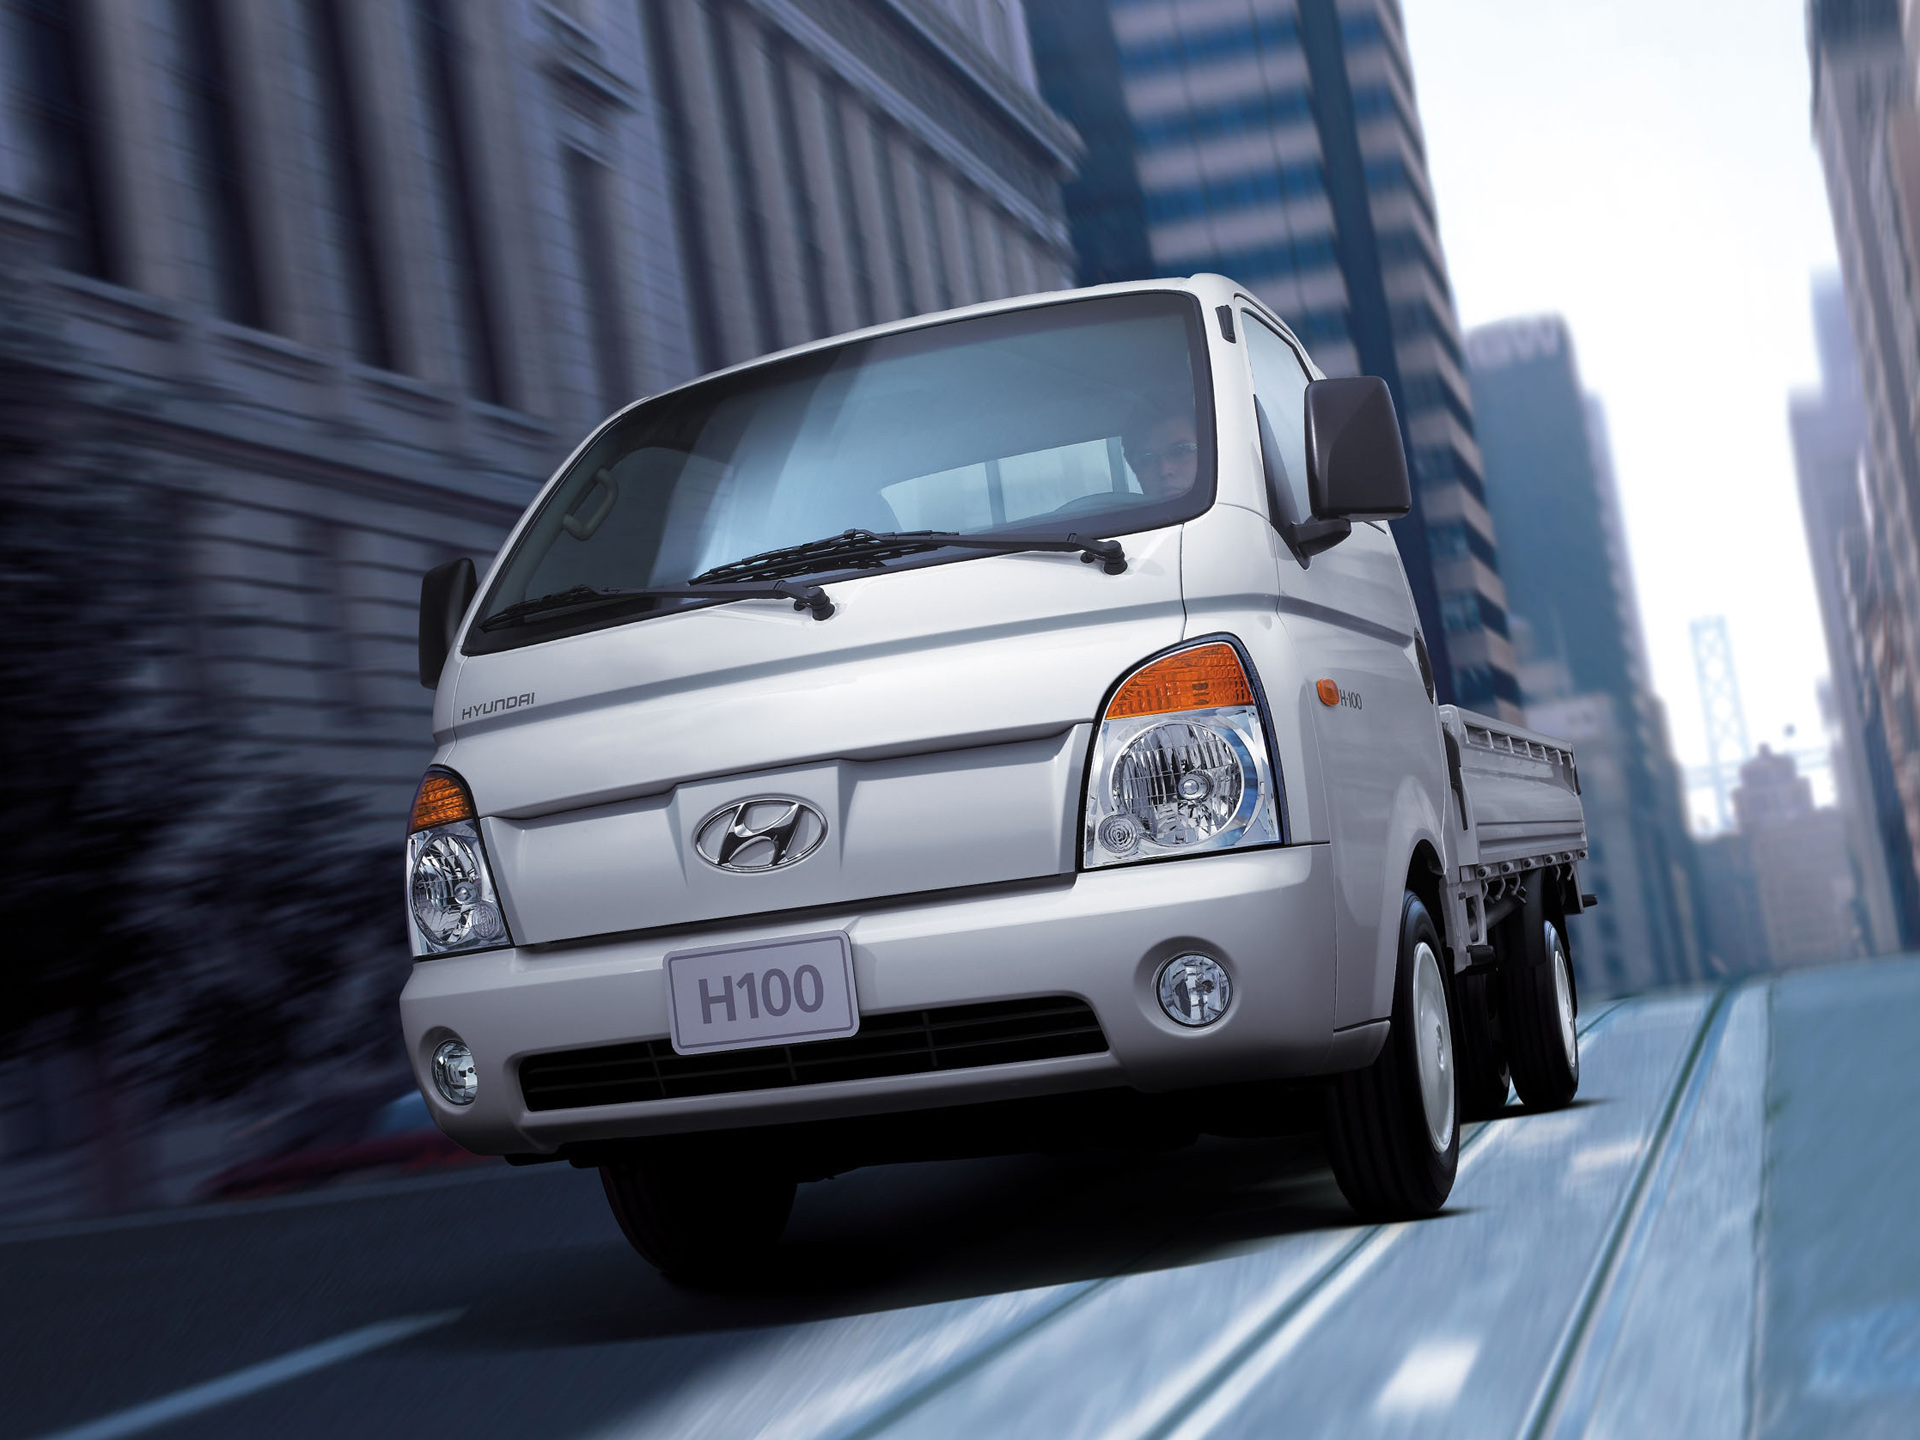 Hyundai H100 photo 62052